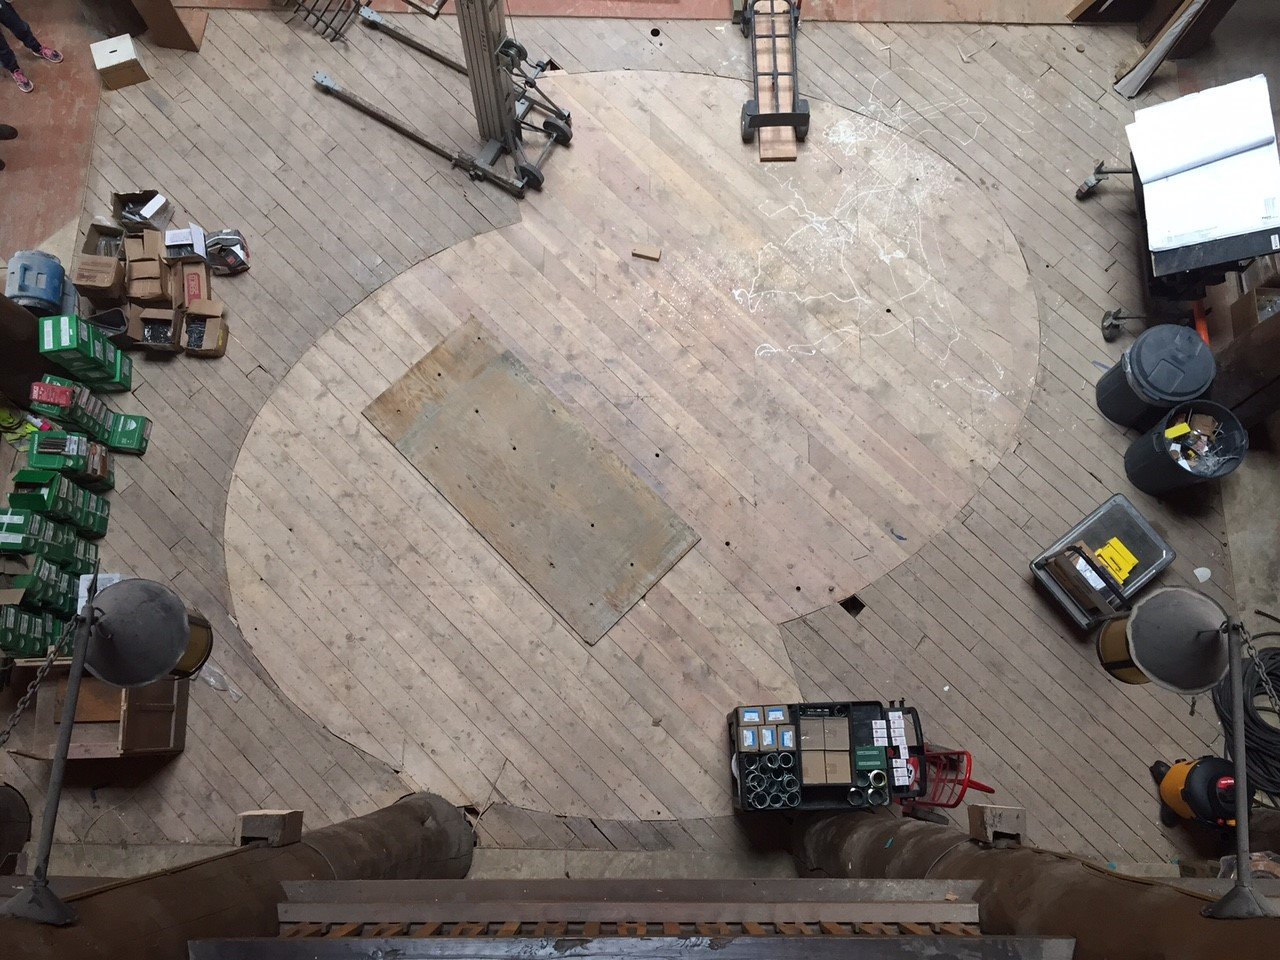 A shot from the interior balcony of the Many Glacier Hotel mezzanine, showing the original footprint of the Helical Stairs on the wooden floor.